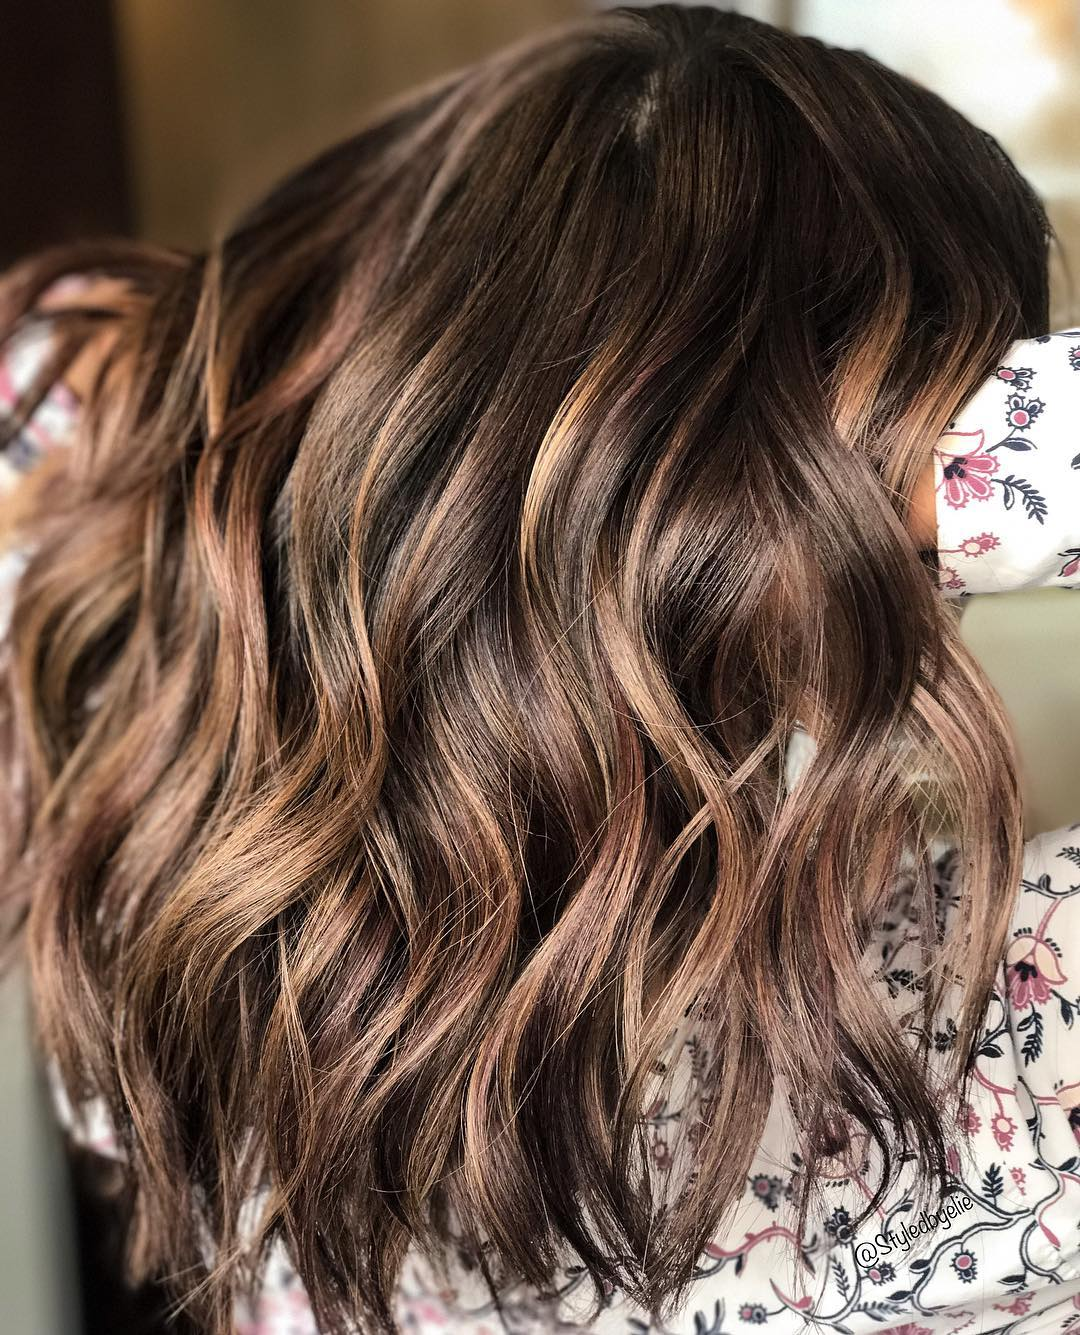 Chocolate Brown Hair with Waves